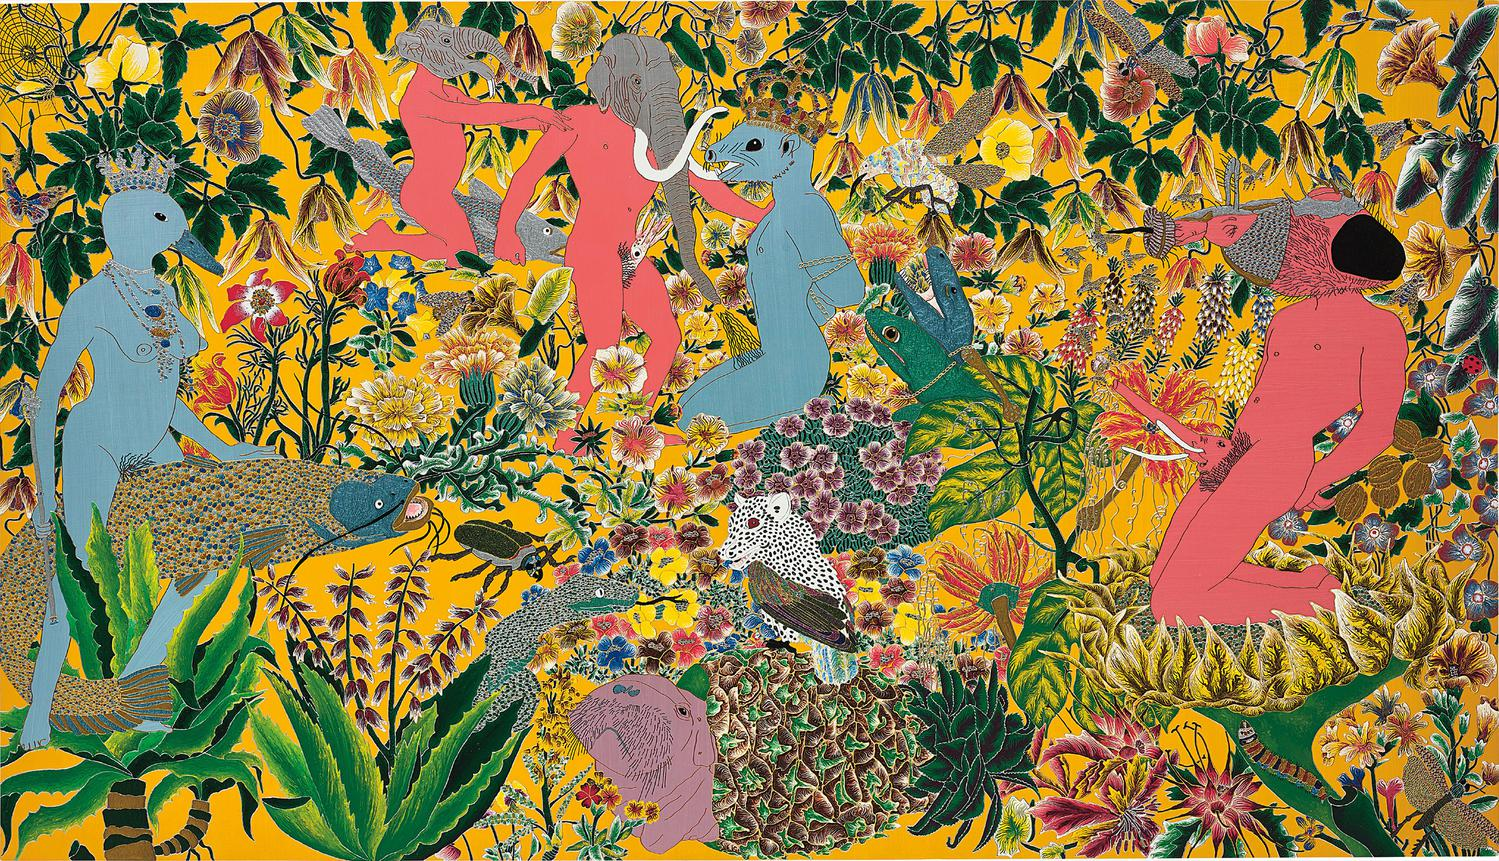 Raqib Shaw-After The Garden Of Earthly Delights - Hieronymus Bosch-2002